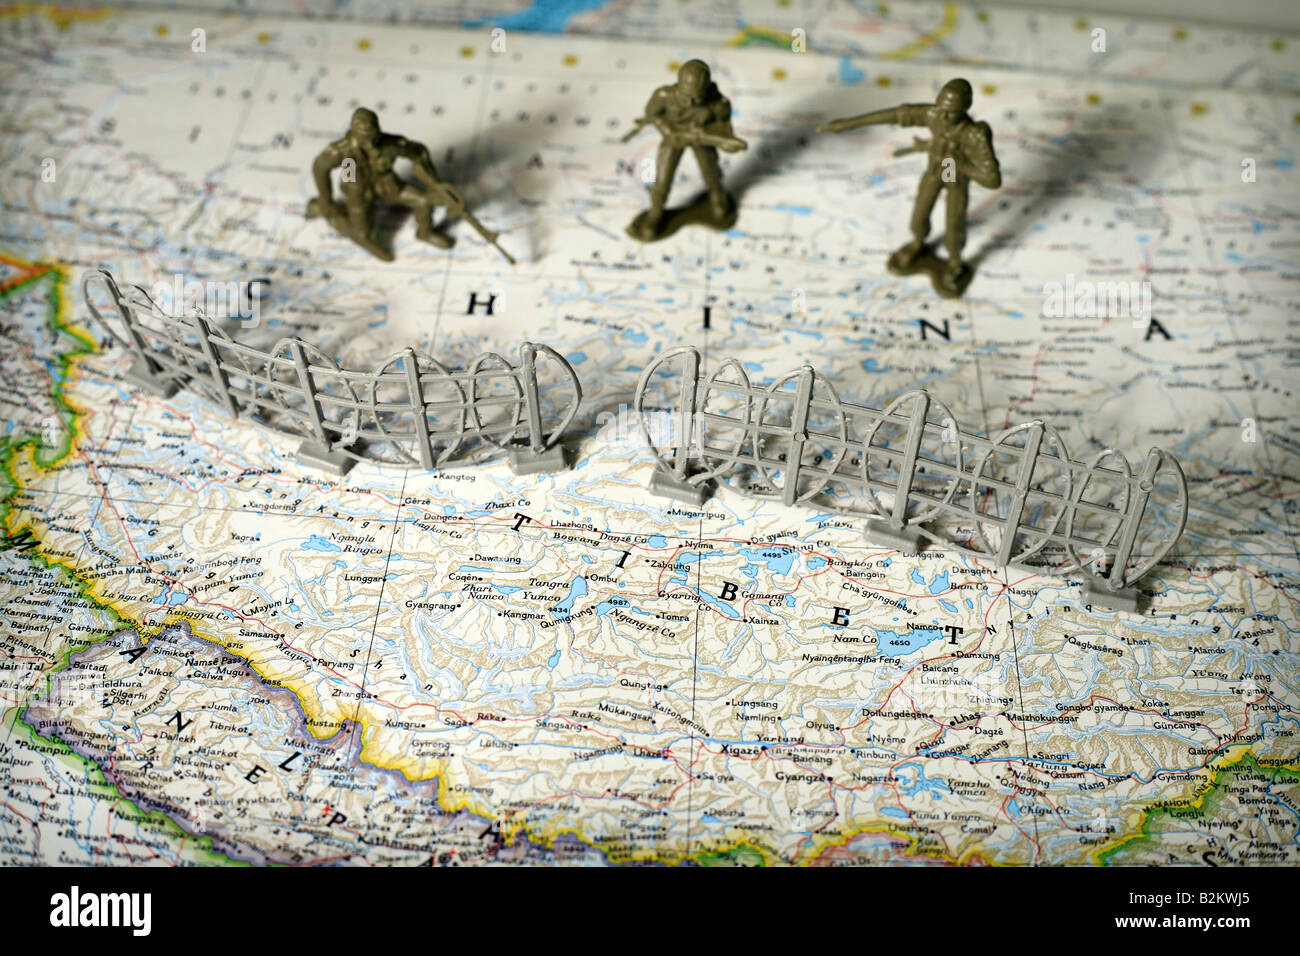 Toy soldiers on map of China and Tibet - Stock Image